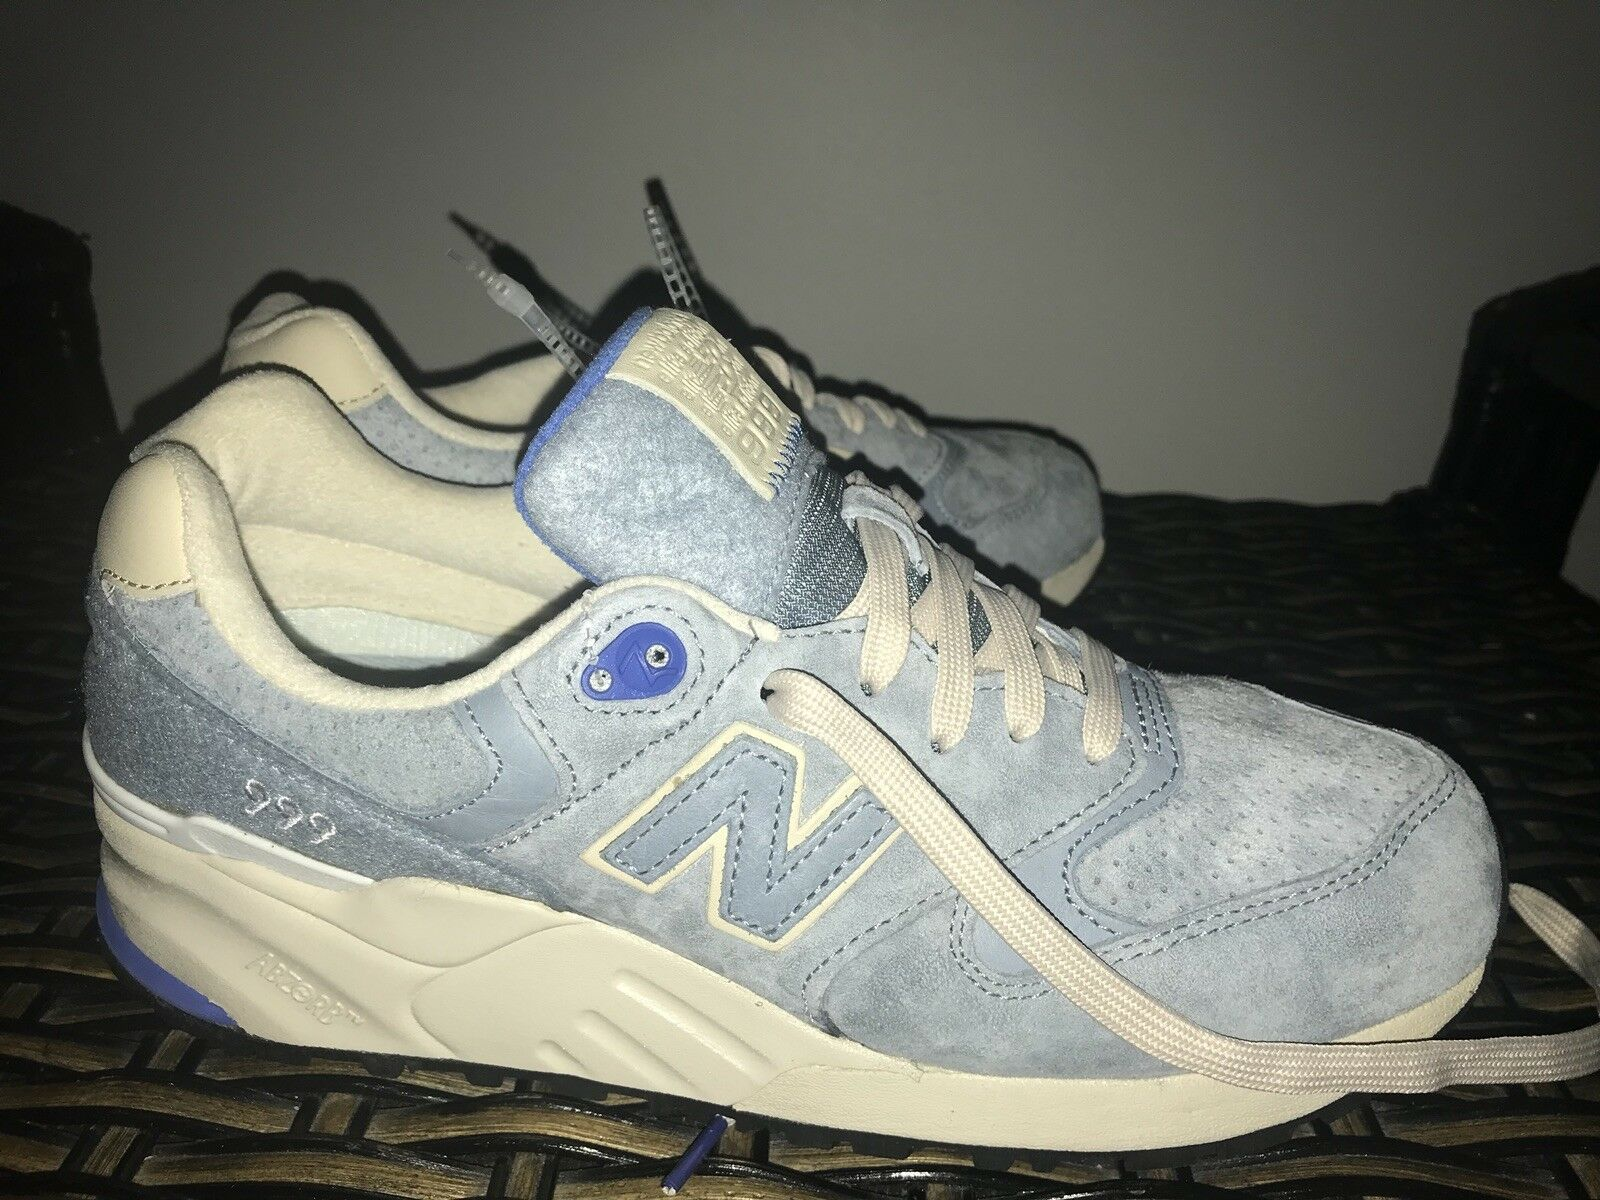 New Balance 999 bluee Cyclone  Wooly Mammoth  ELITE EDITION Men's Size 8.5